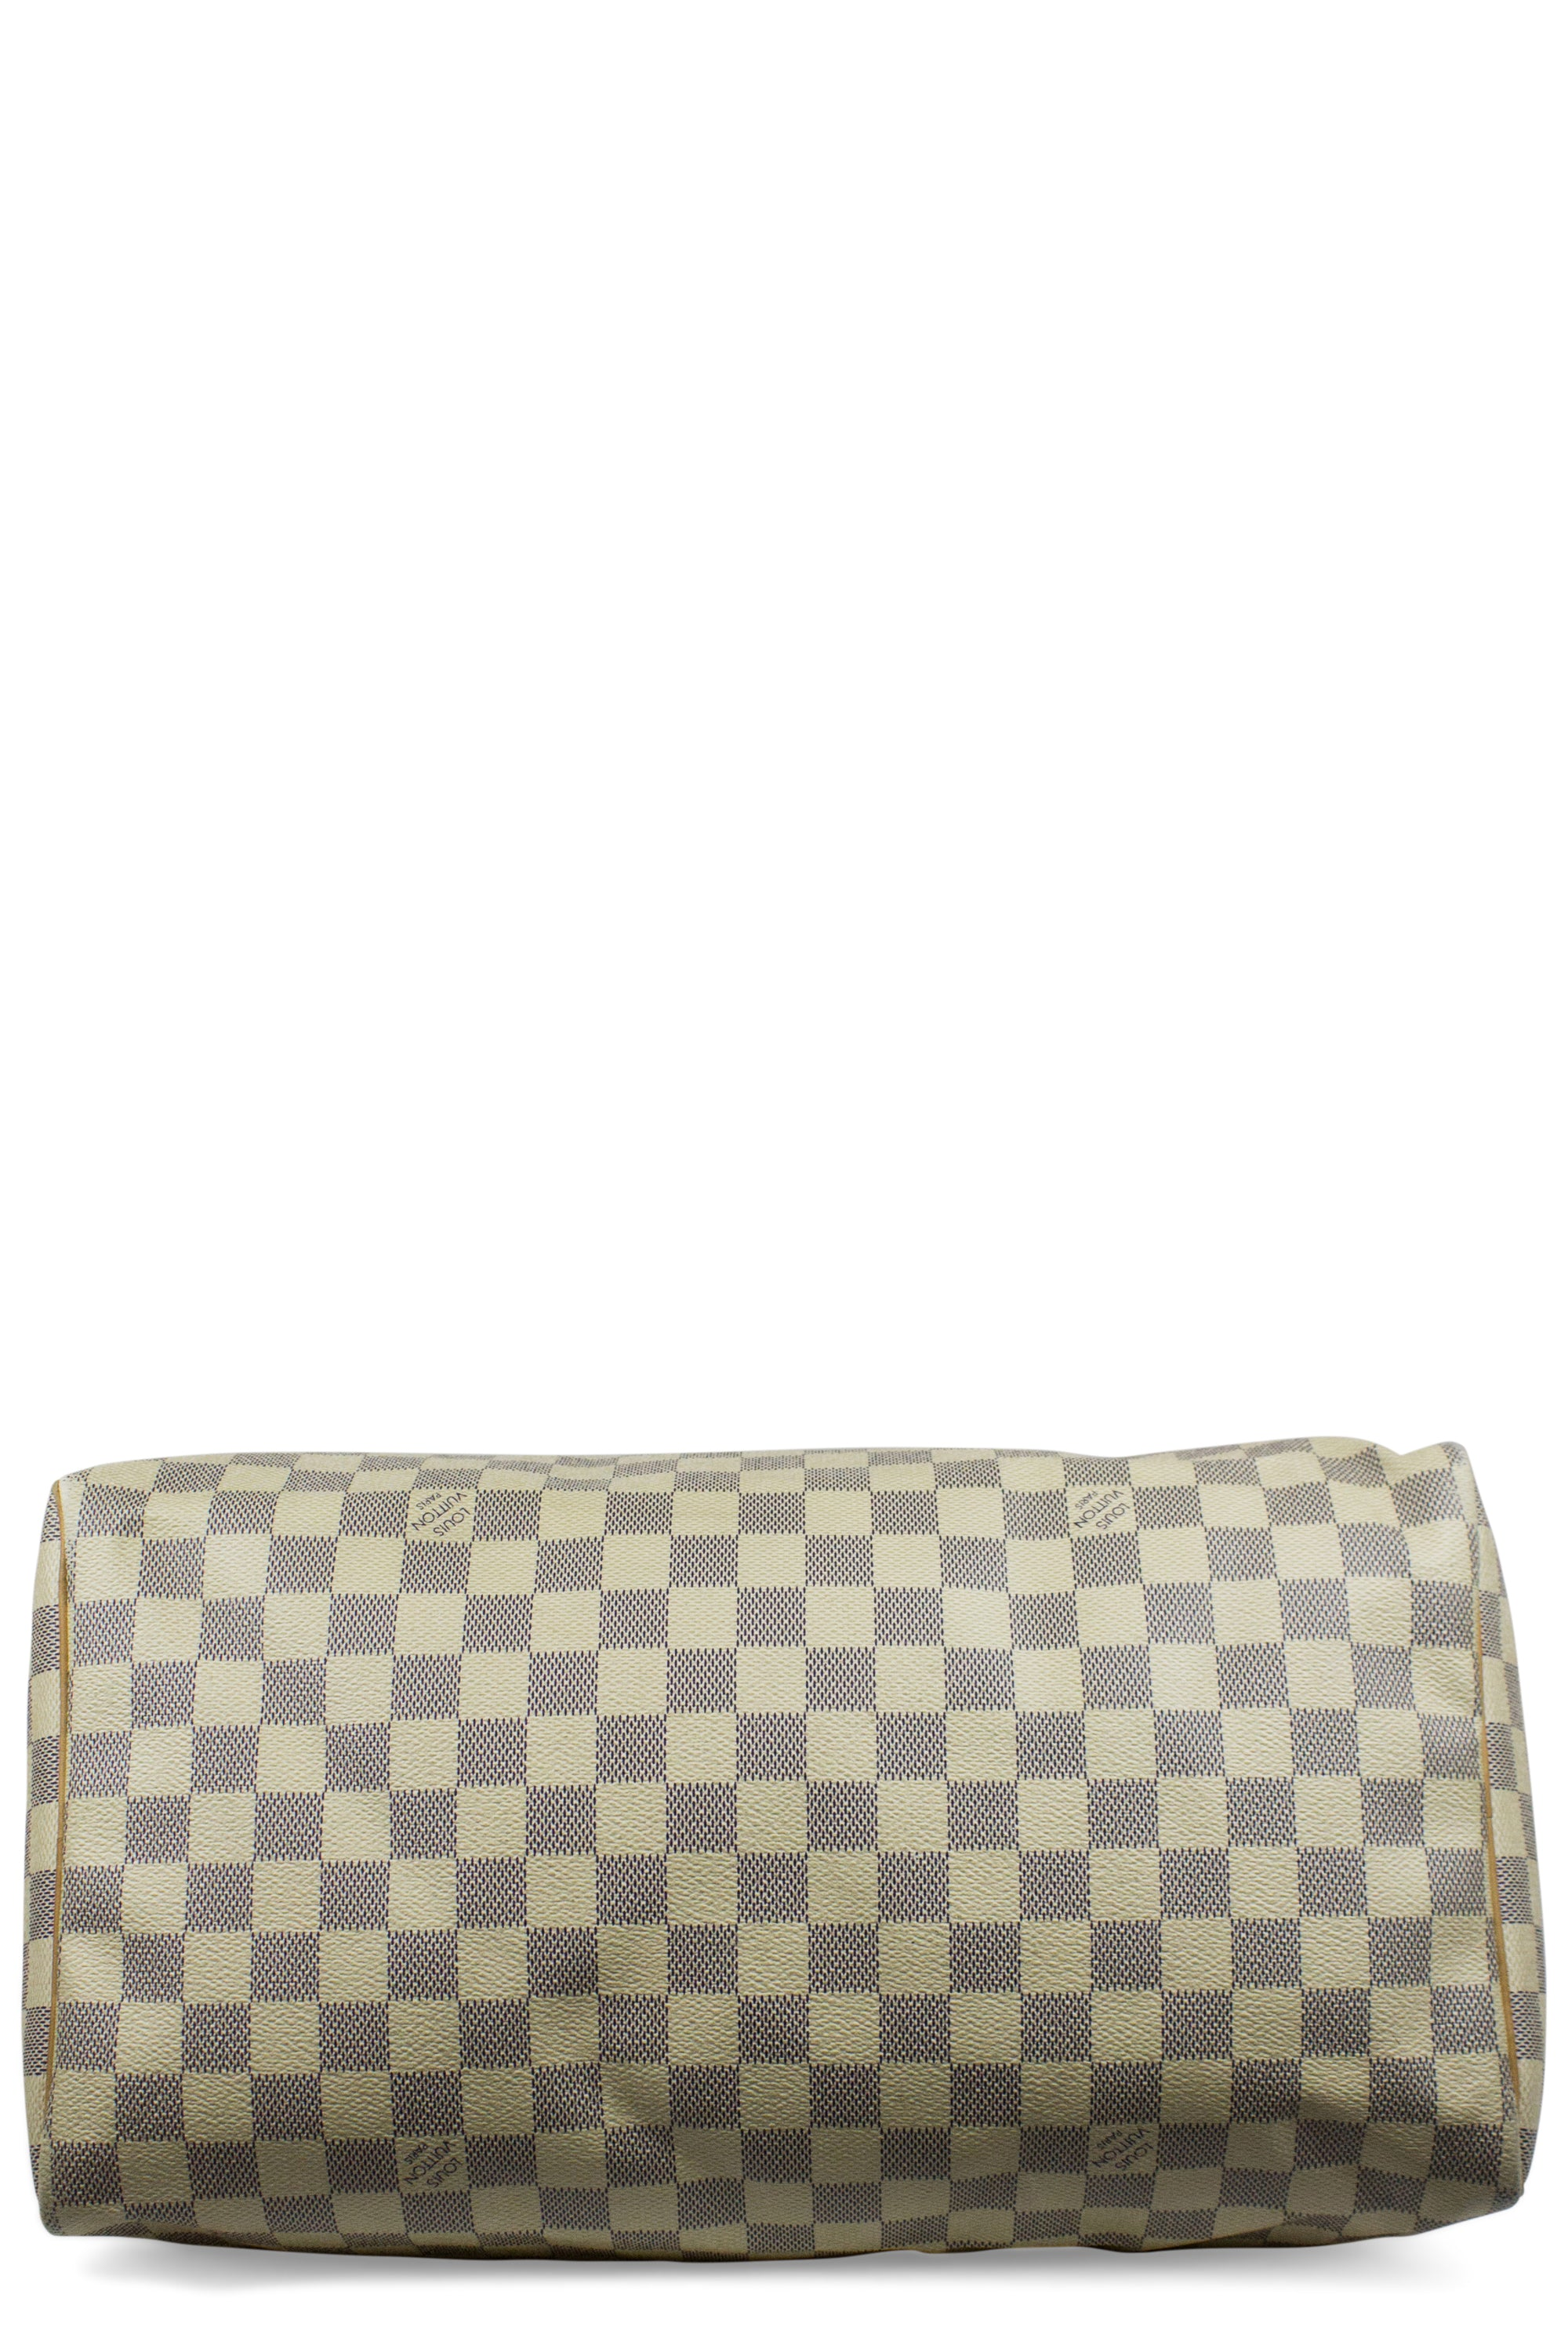 Treasure No. 7 - LOUIS VUITTON Speedy 35 Damier Azur Bag